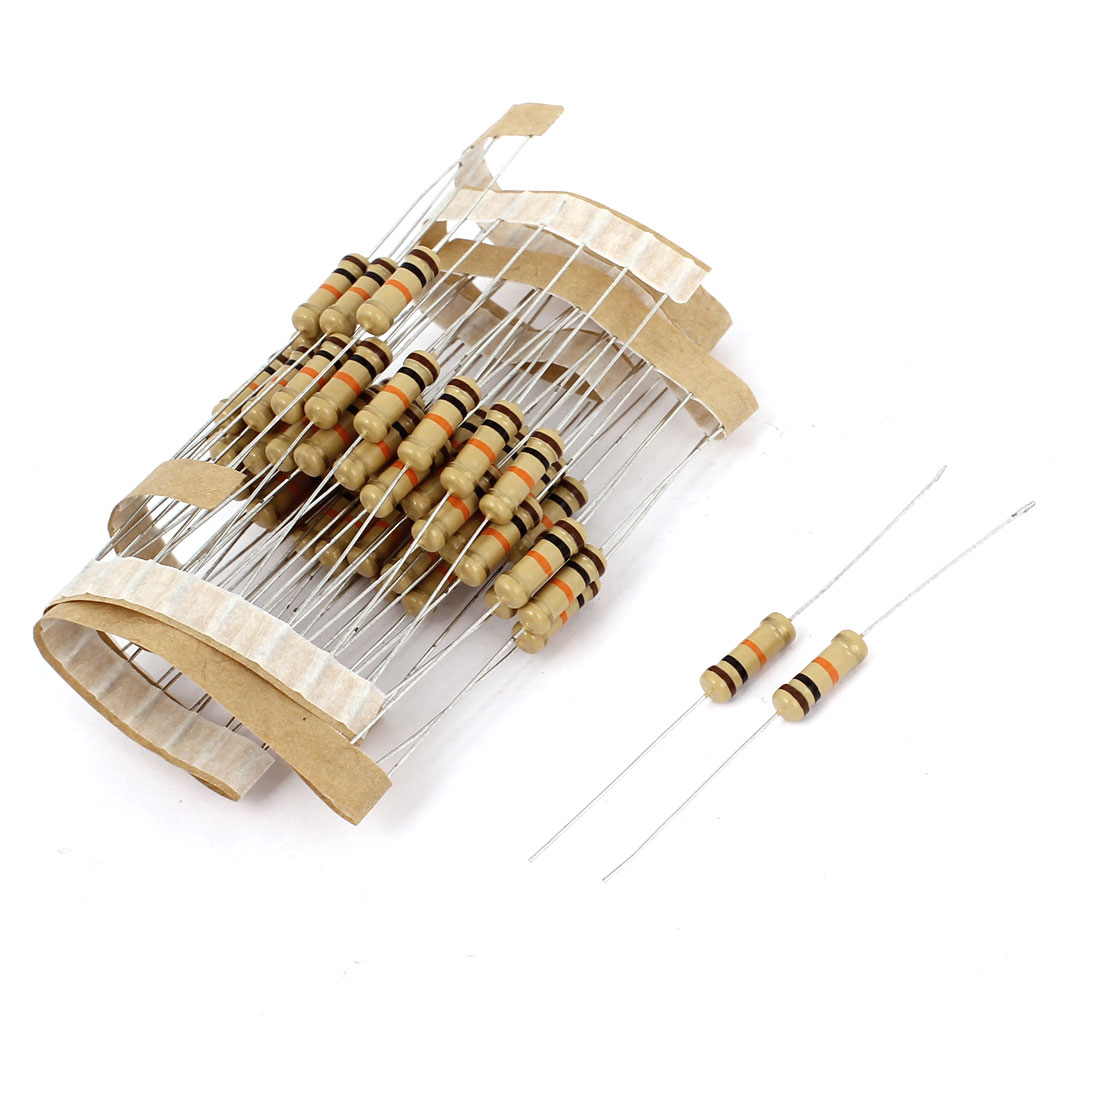 60 Pcs 4 Bands 1W Watt 10K Ohm 5% Axial Lead Carbon Film Resistors